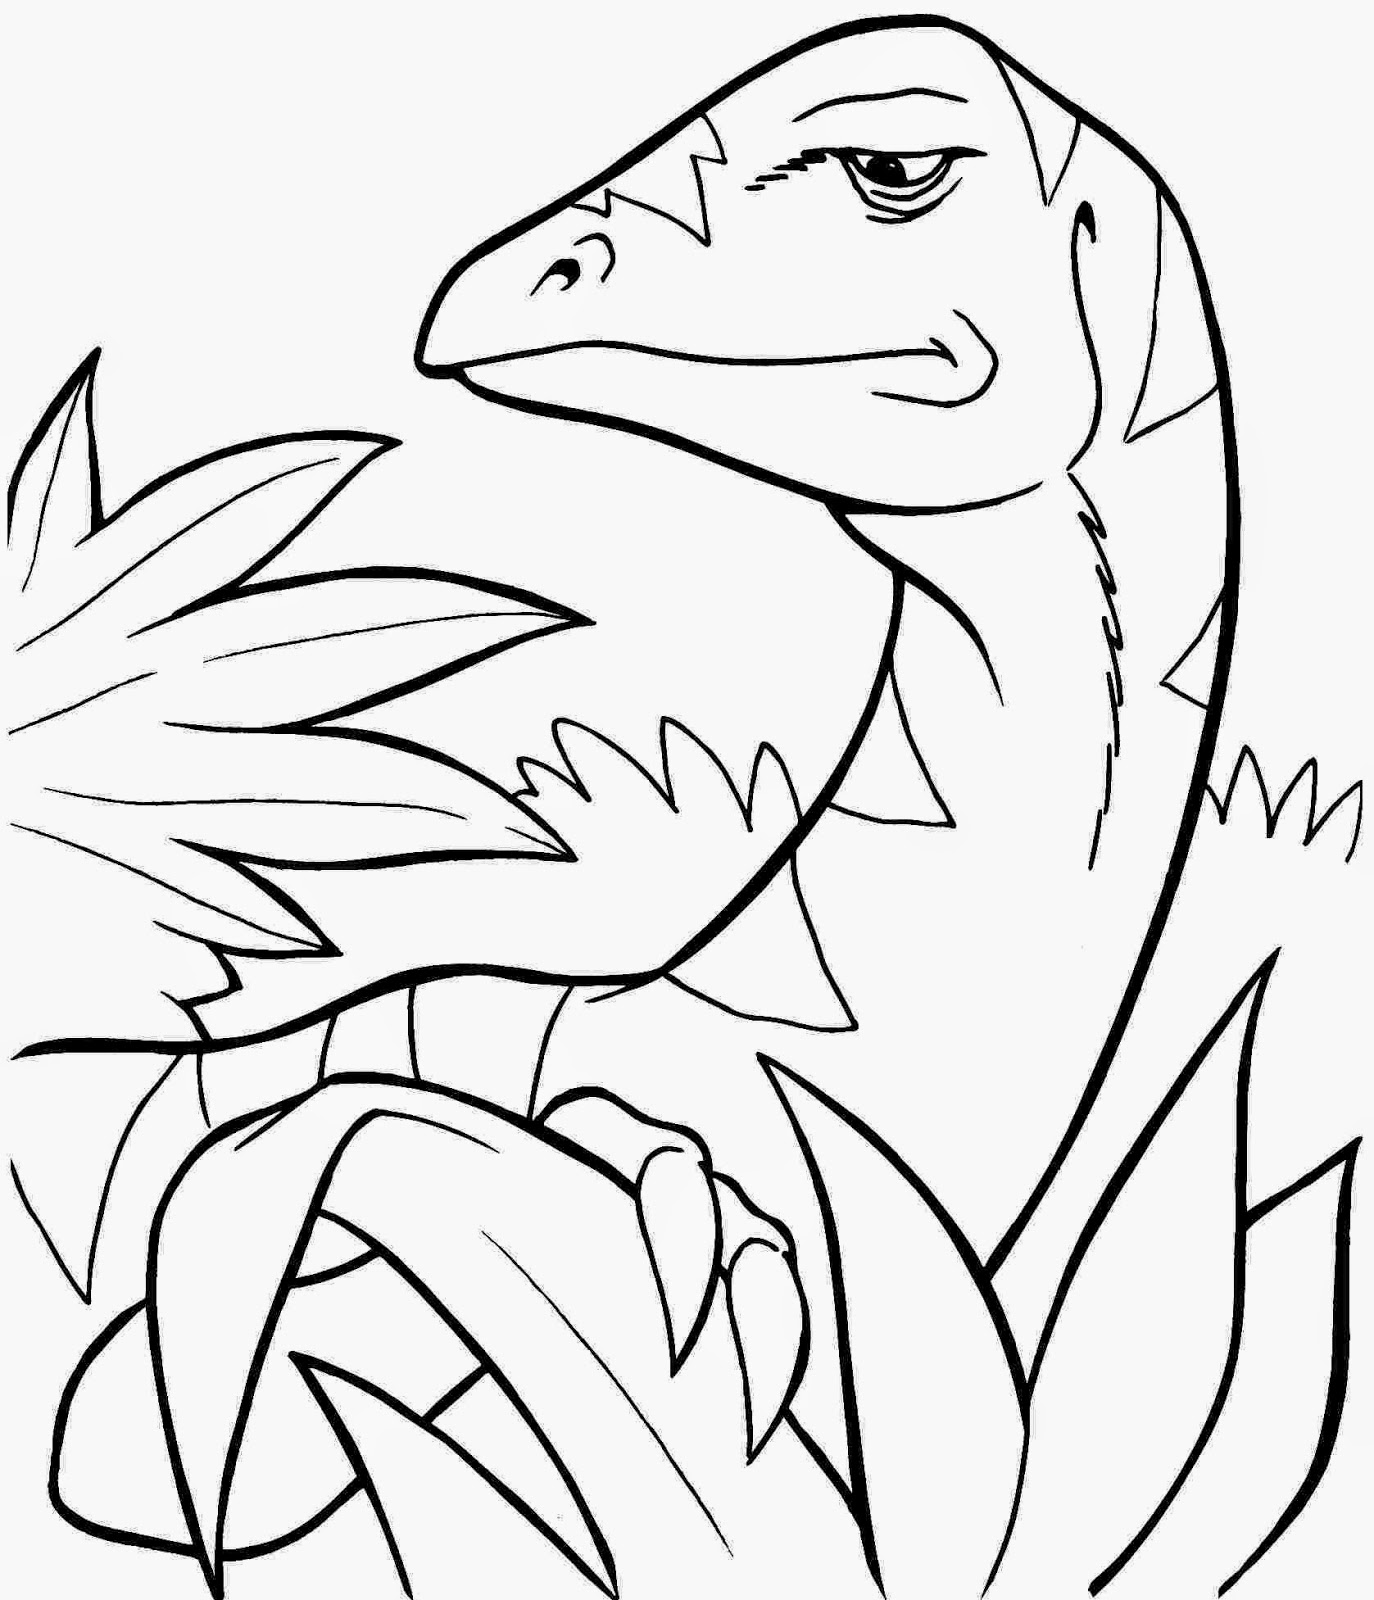 dinosaur print out coloring pages baby dinosaur coloring pages for preschoolers activity dinosaur pages coloring print out